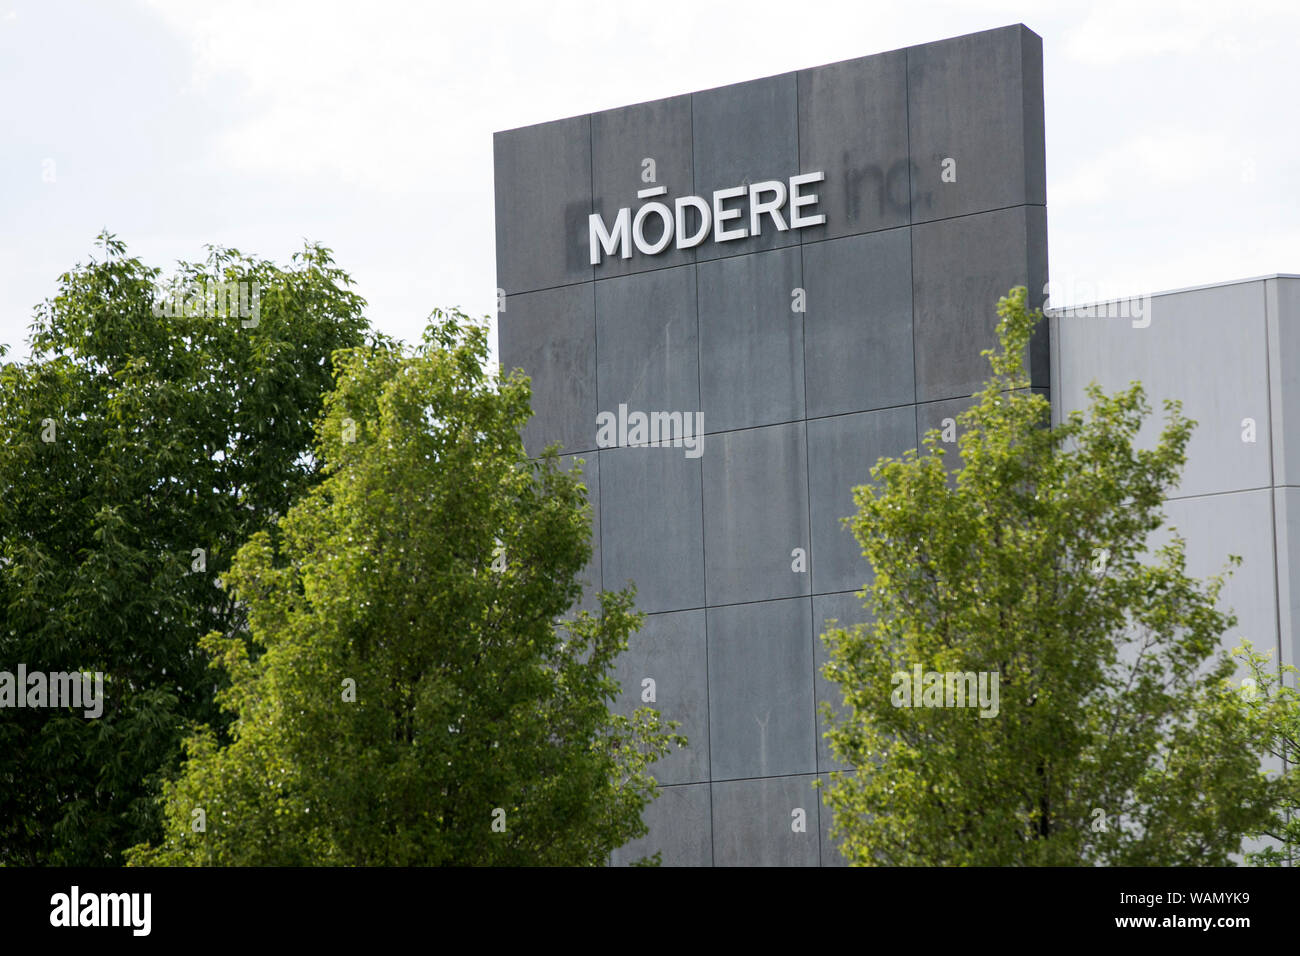 A logo sign outside of the headquarters of Modere in Springville, Utah on July 29, 2019. Stock Photo